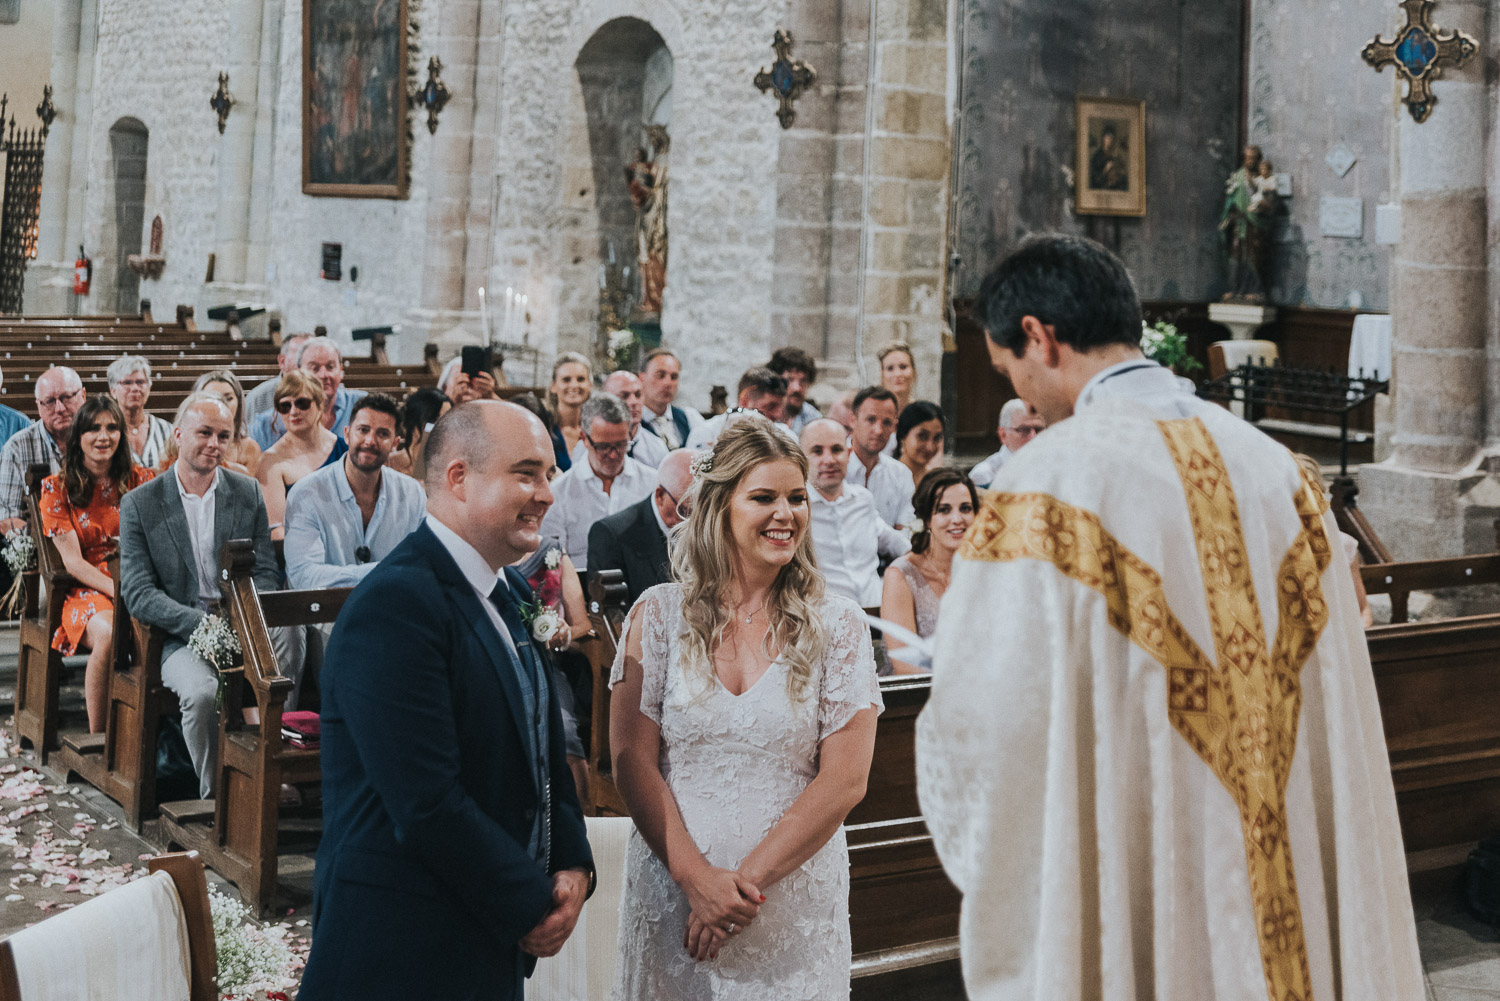 chateau_canet_carcassonne_wedding_katy_webb_photography_france_UK110